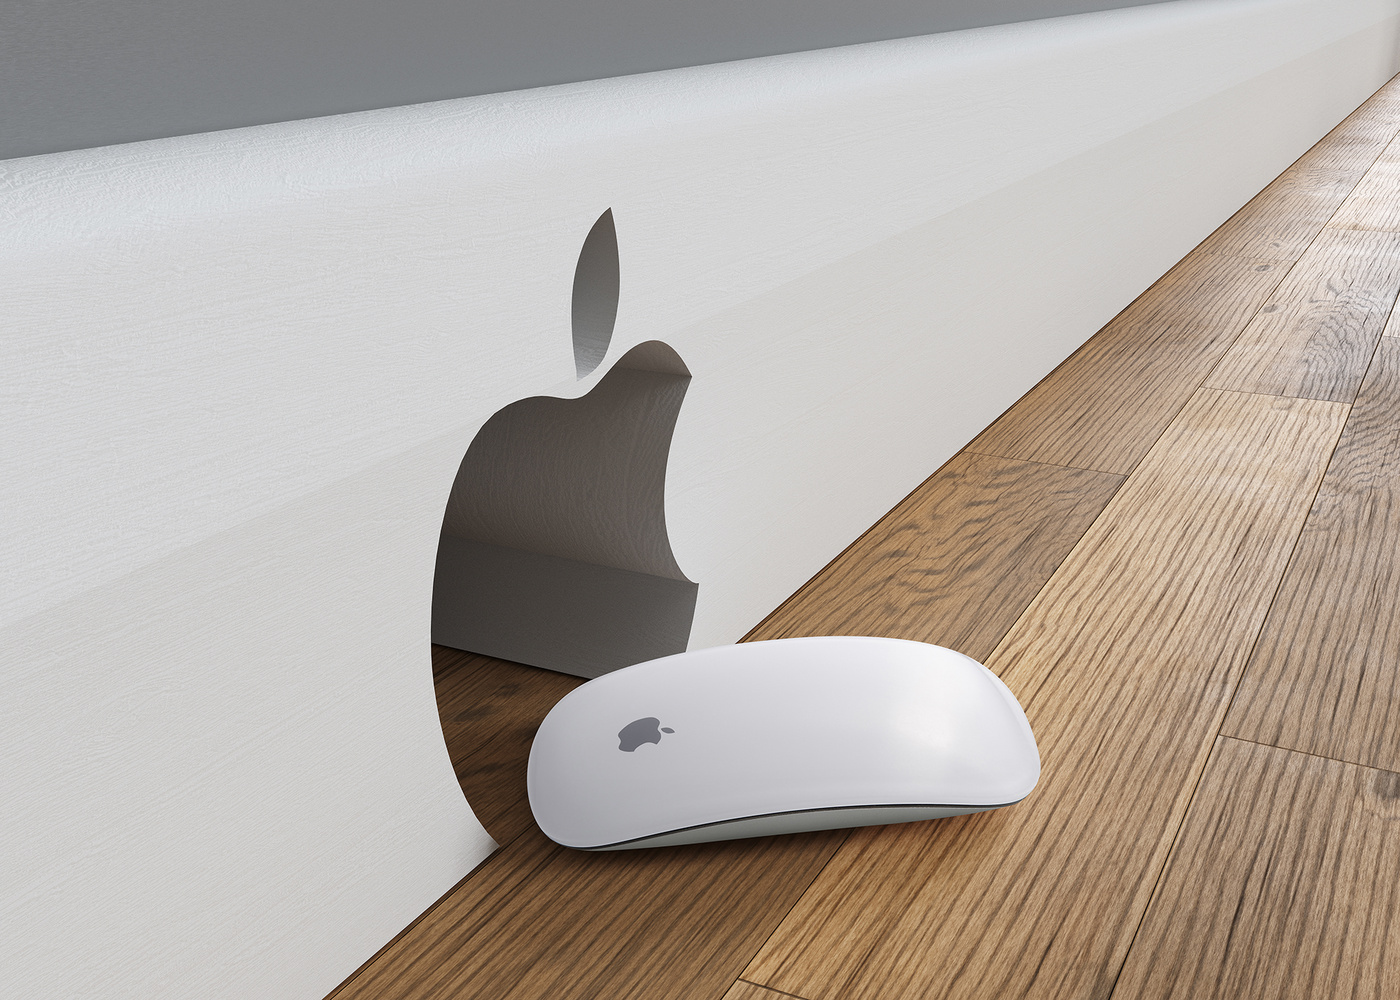 Where the Mac Mouse Sleeps by Ian Knaggs